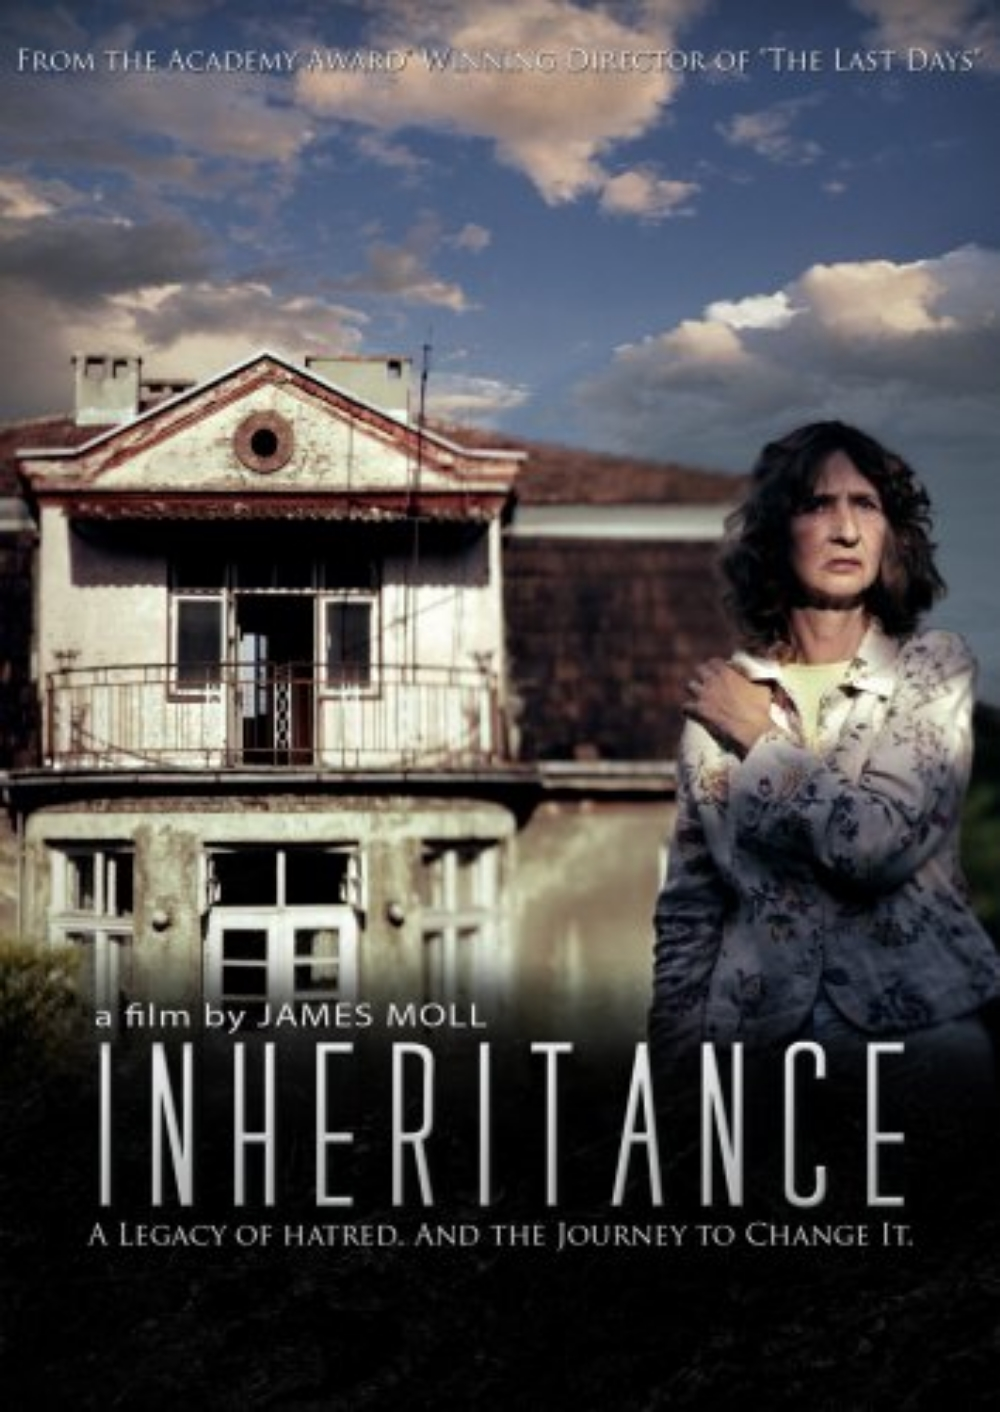 "INHERITANCE The EMMY® AWARD Winning Documentary, INHERITANCE is the story of Monika Hertwig and her journey to accept the truth about her father, Nazi commander, Amon Goeth, who was portrayed by actor Ralph Fiennes in ""Schindler's List."" As part of Monika's search for information, she reaches out to Helen Jonas-Rosenzweig, a woman who had been enslaved by Monika's father during the war. More than sixty-years after Monika's father was executed for his war crimes, in a historic and painful moment, these two women meet, bringing closure, yet raising new questions."